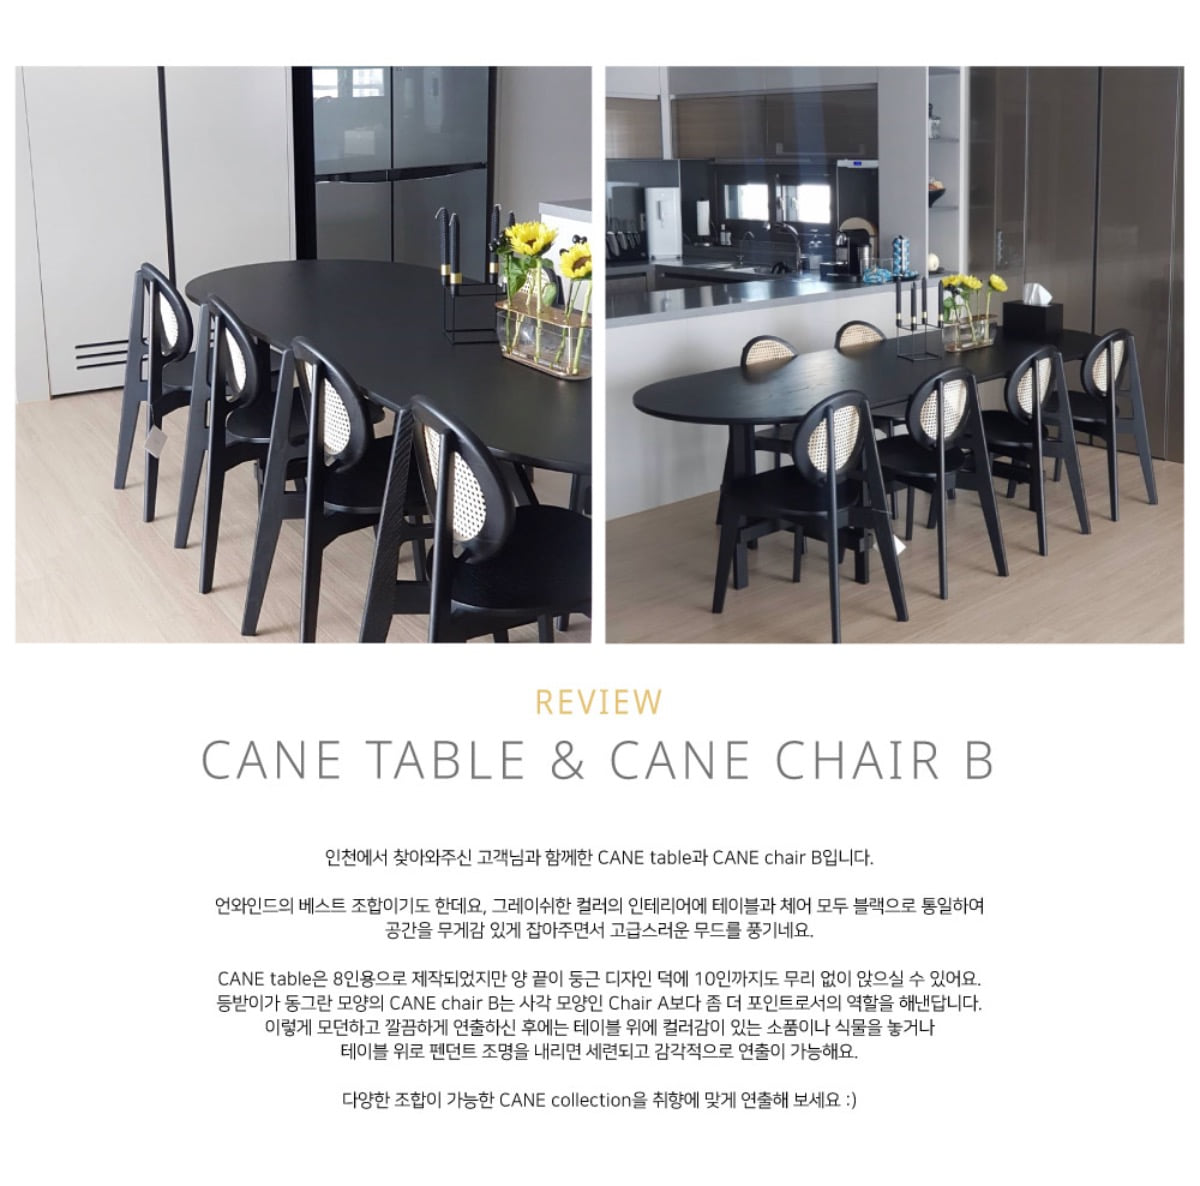 CANE table & chair B